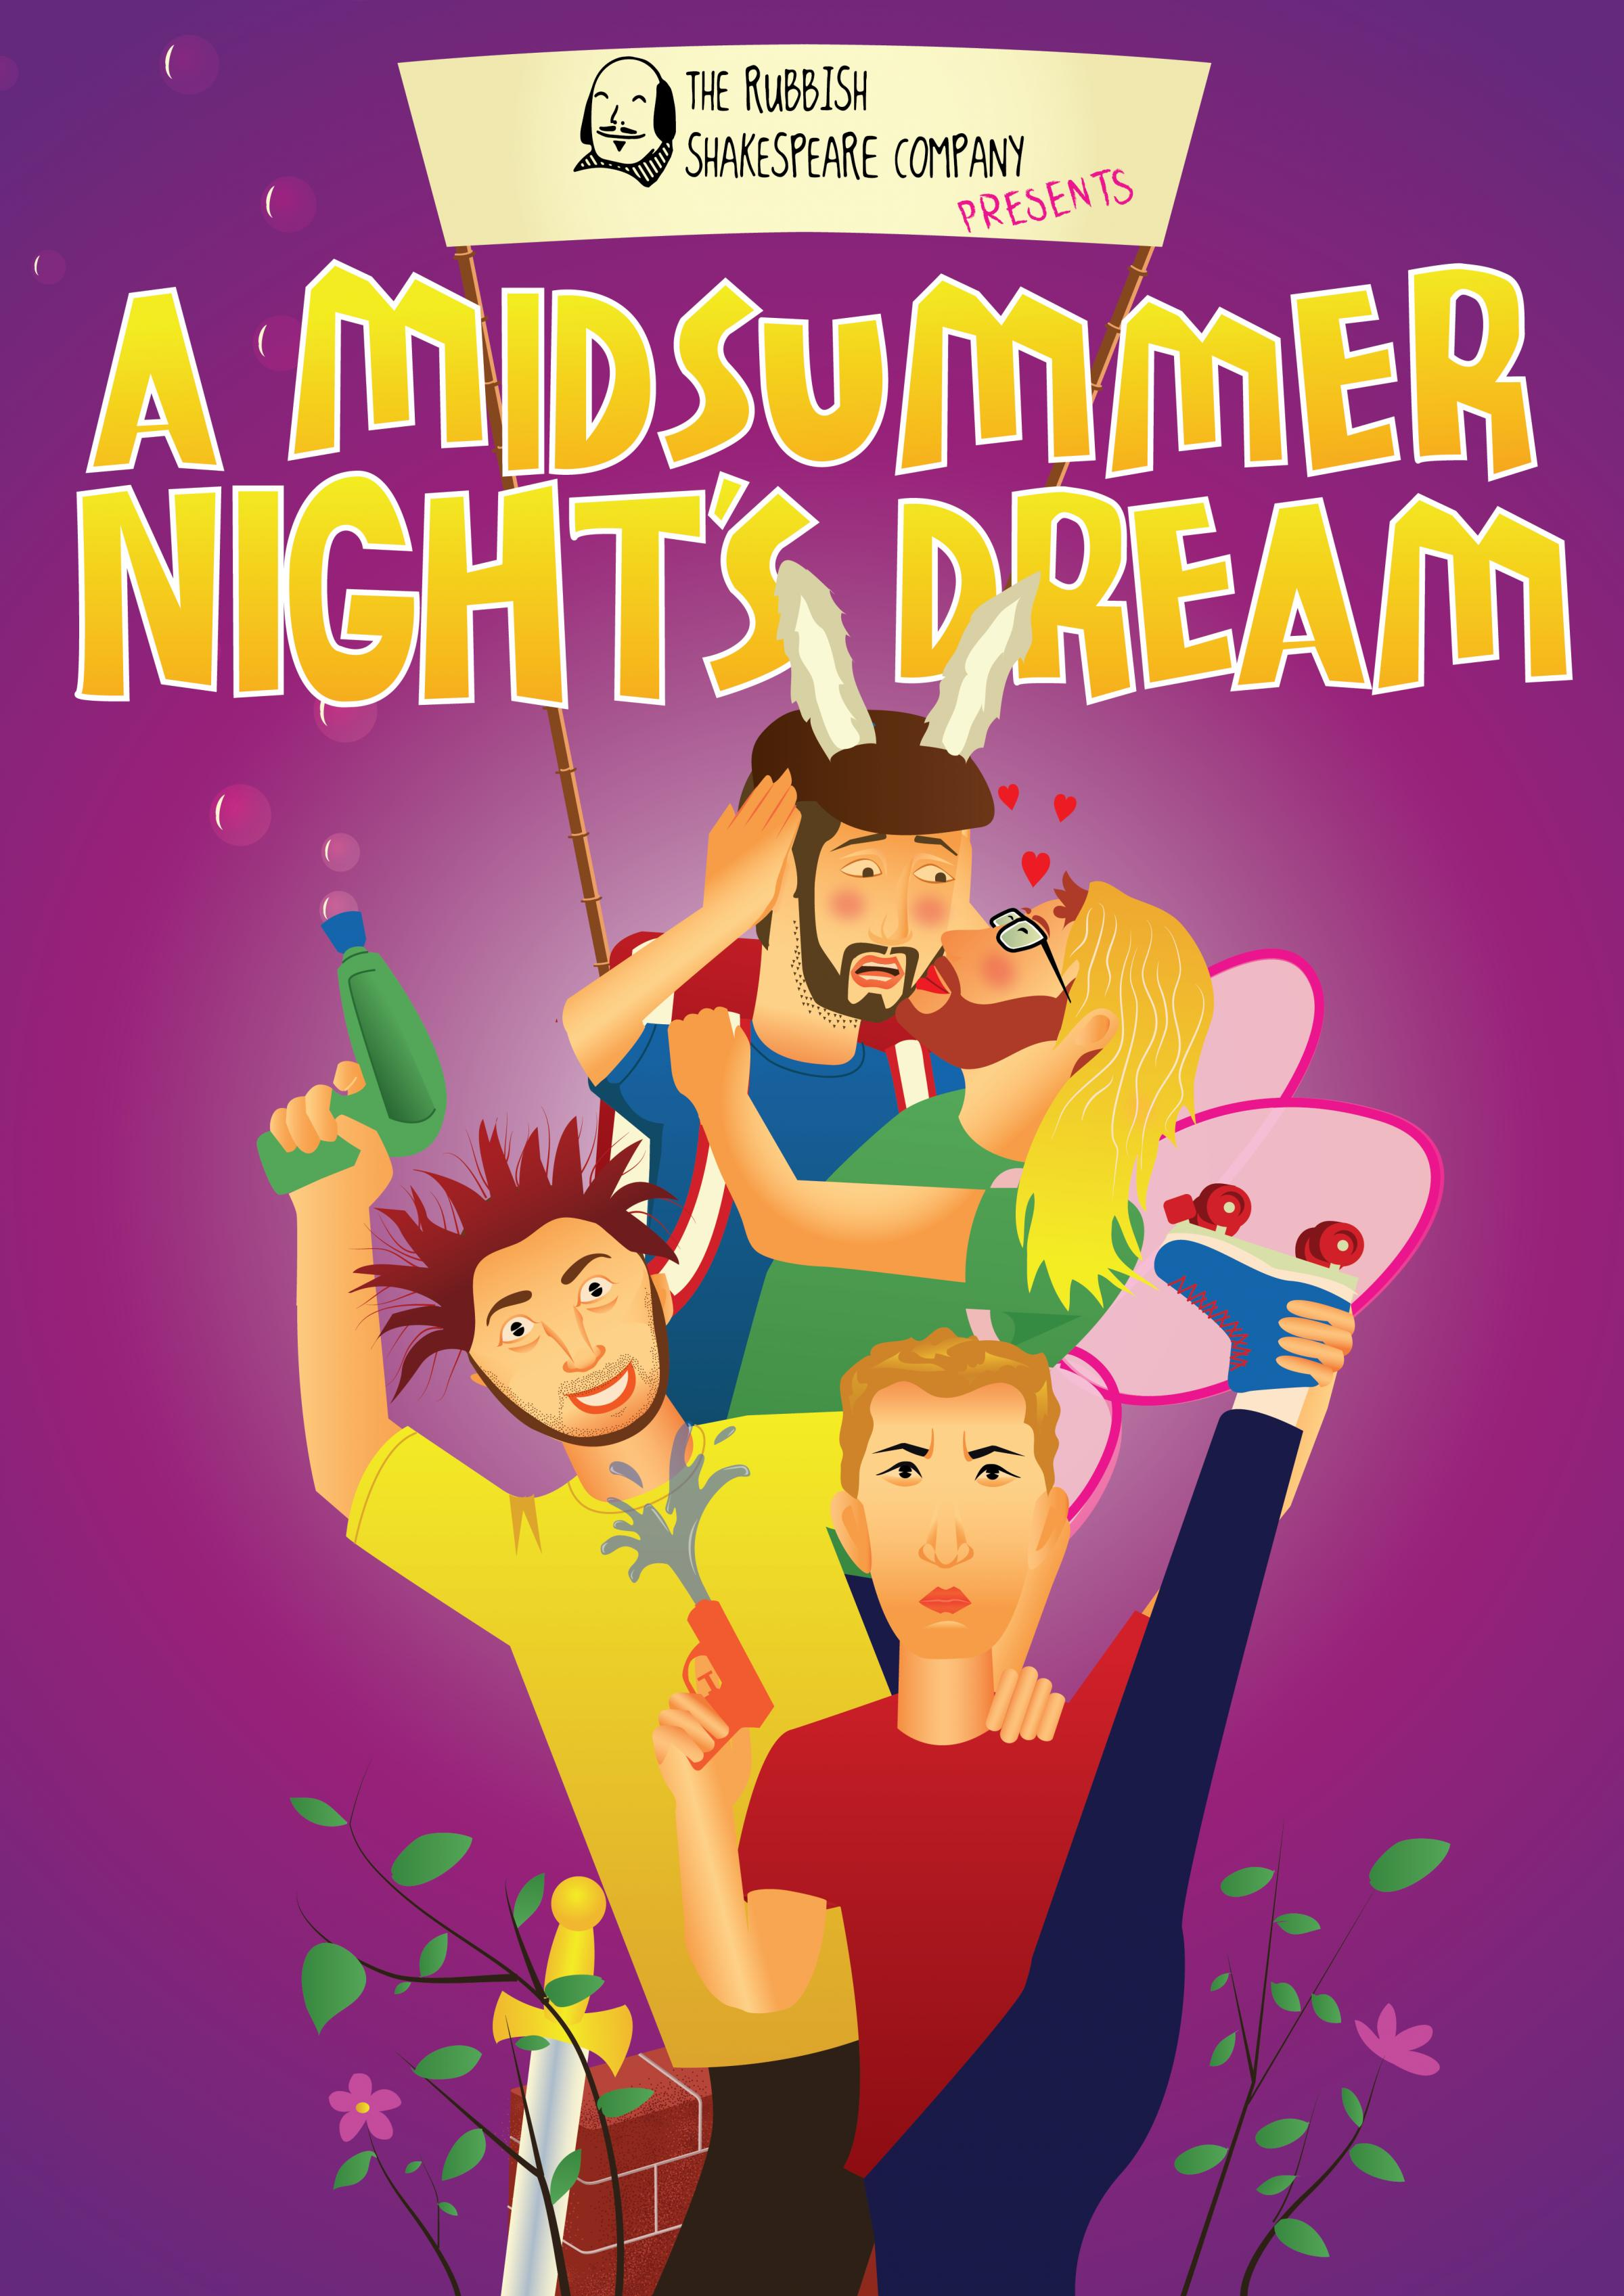 The Rubbish Shakespeare Company present: A Midsummer Night's Dream